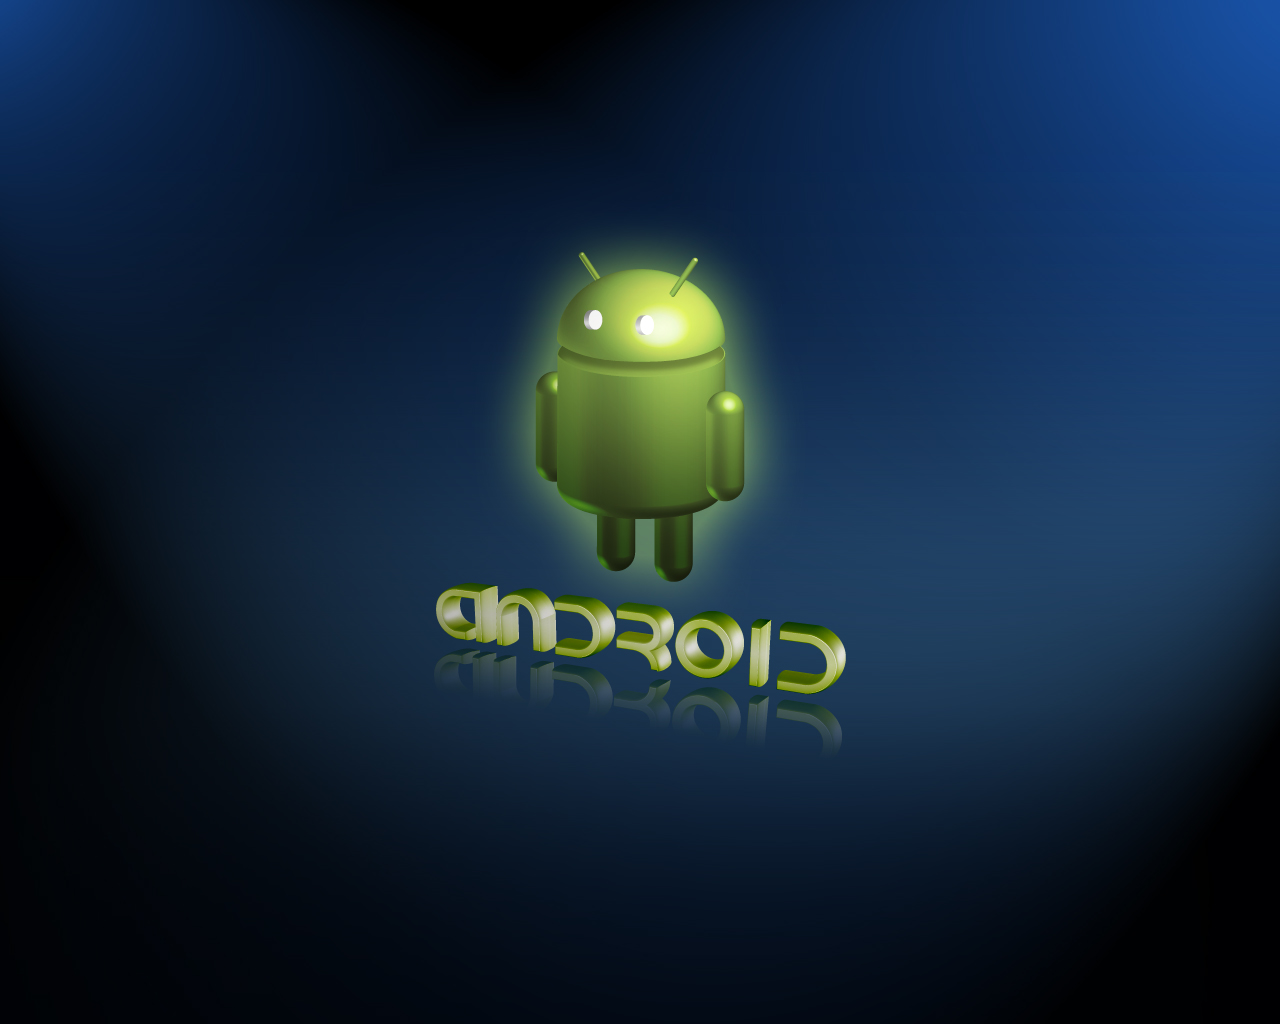 Free Android 3d Wallpaper By Mauxwebmaster